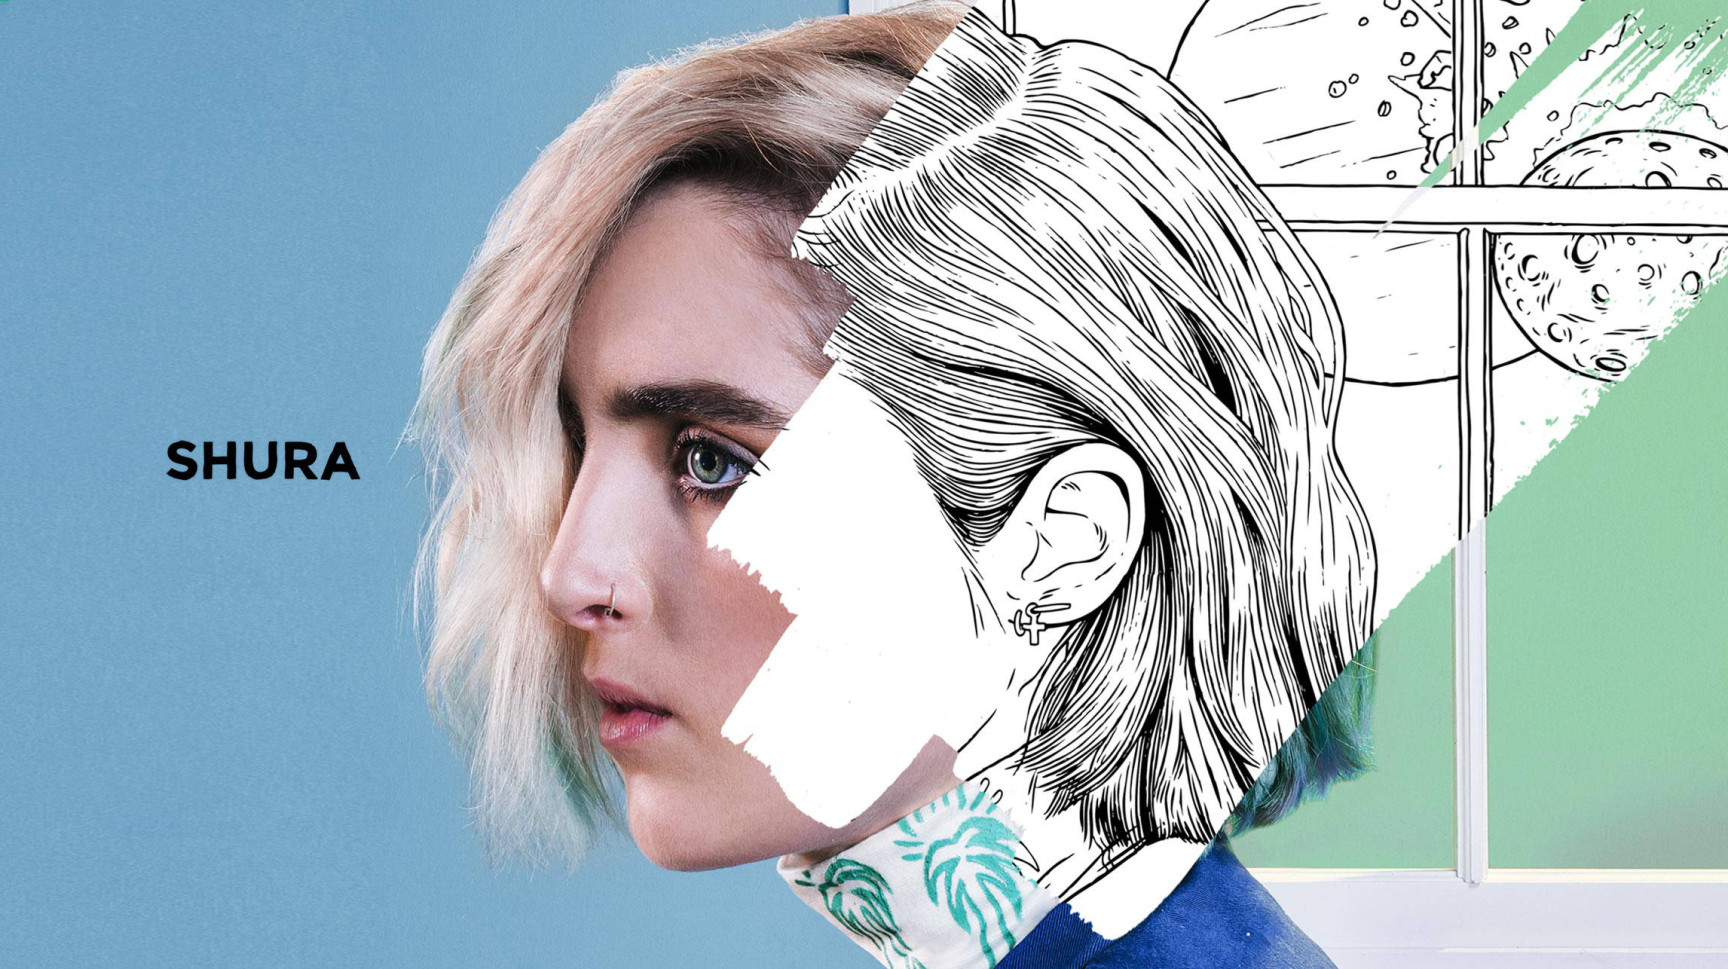 Art Direction & Design / Music<br /><strong>Shura</strong>